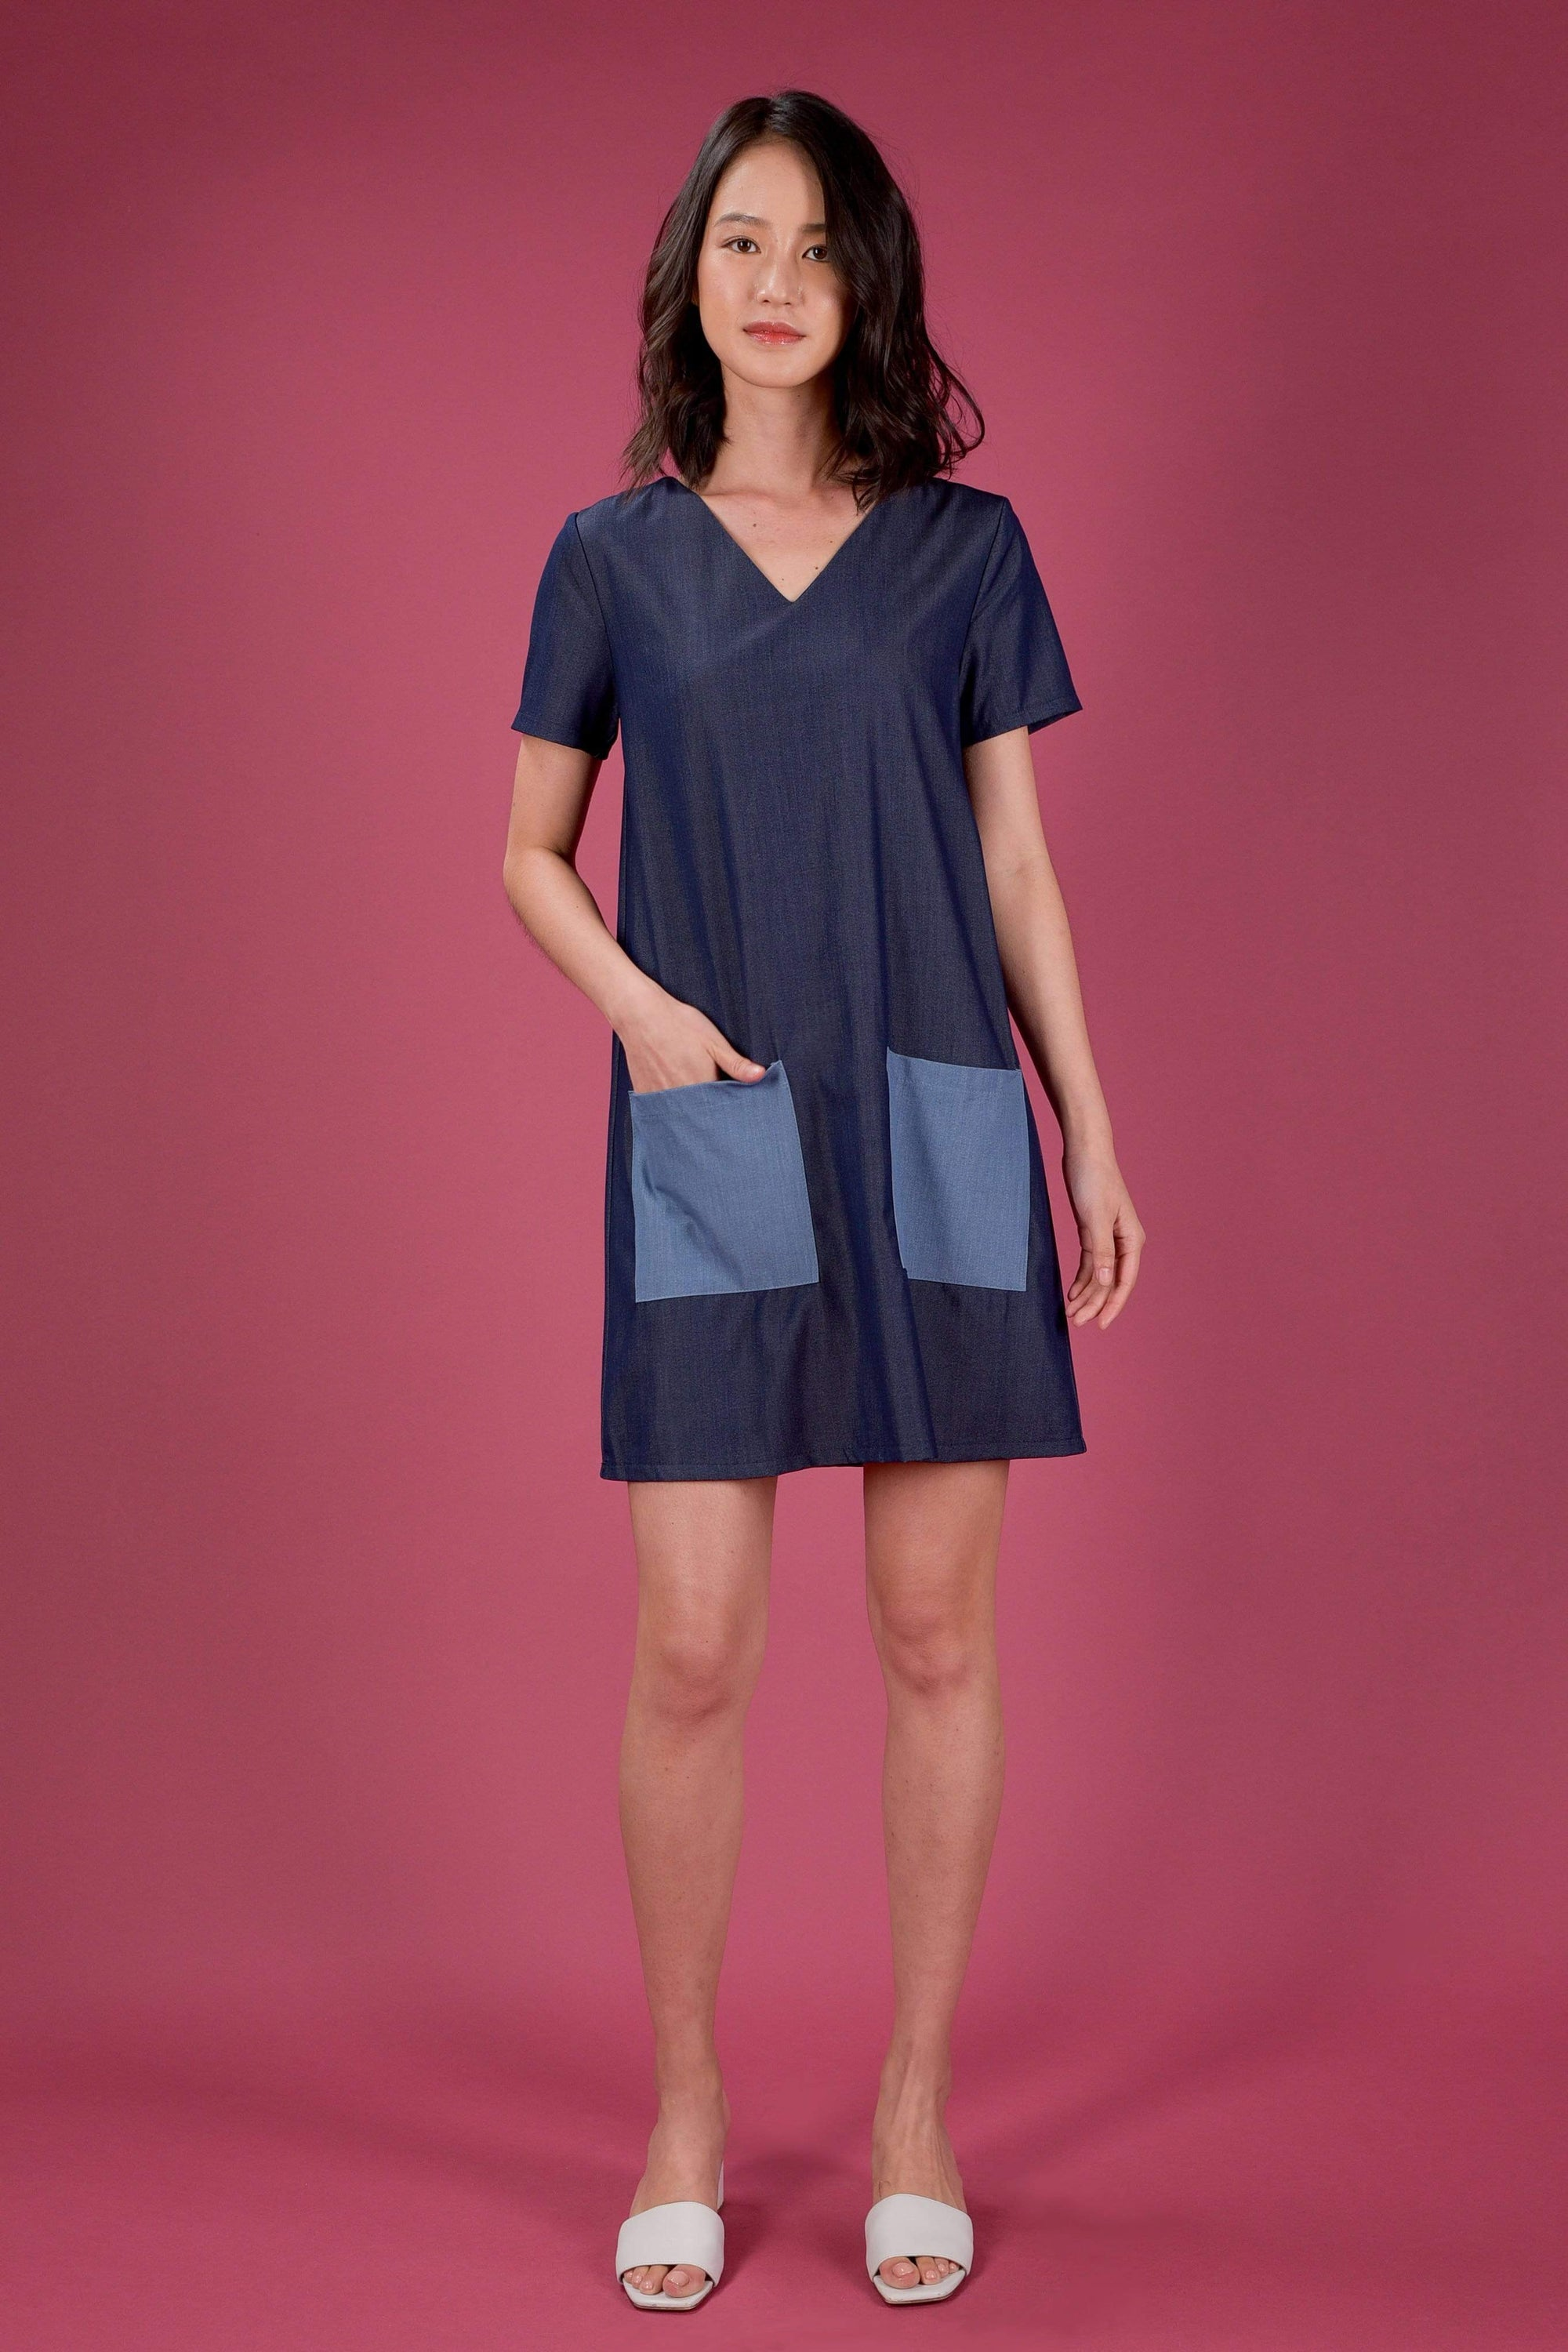 AWE Dresses EVERYDAY V-NECK COLOURBLOCK SLEEVED DRESS IN DARK DENIM